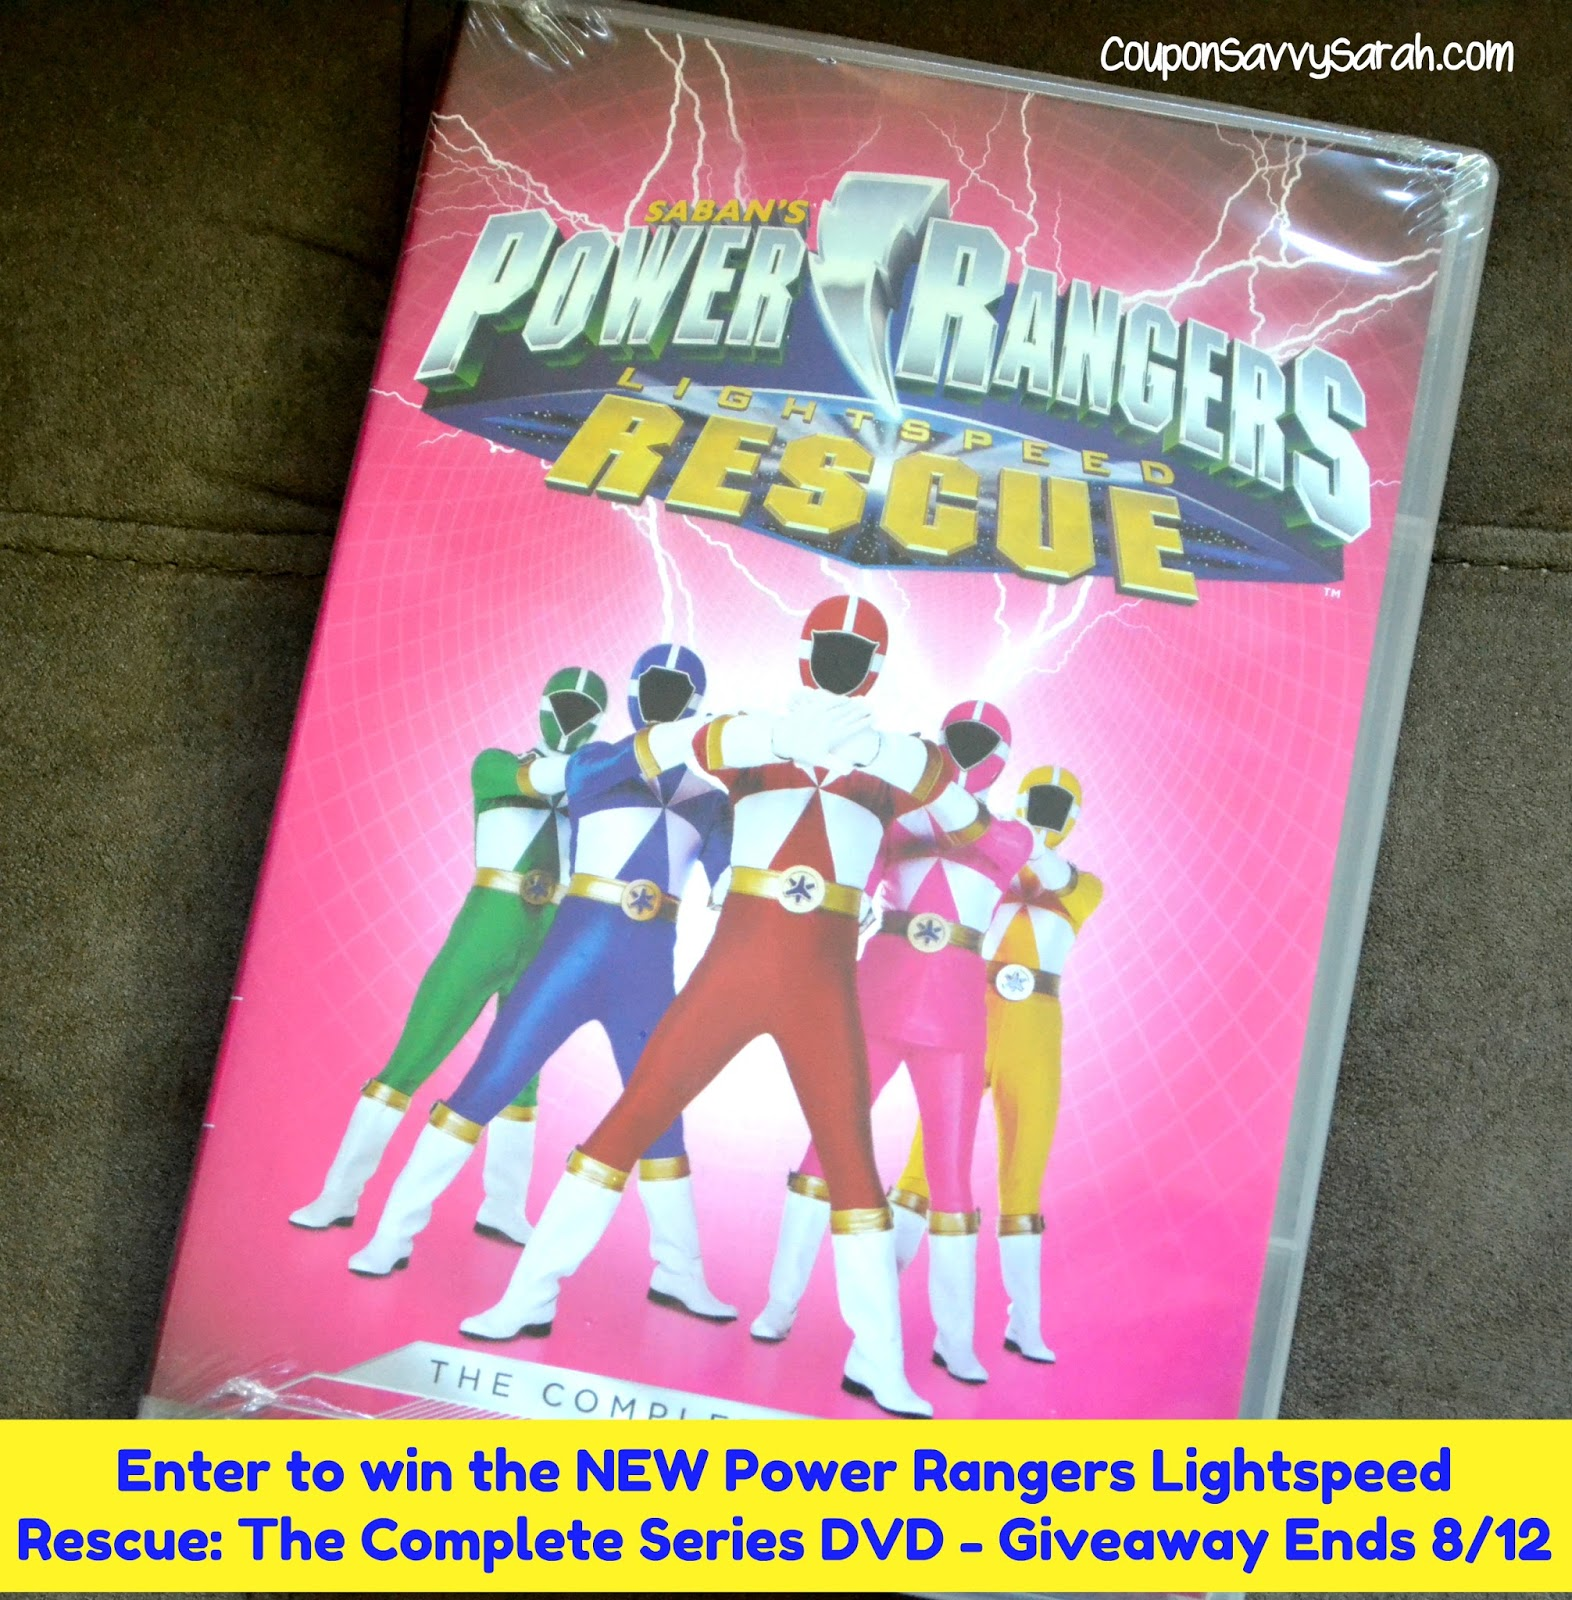 coupon savvy sarah coming soon to dvd power rangers. Black Bedroom Furniture Sets. Home Design Ideas